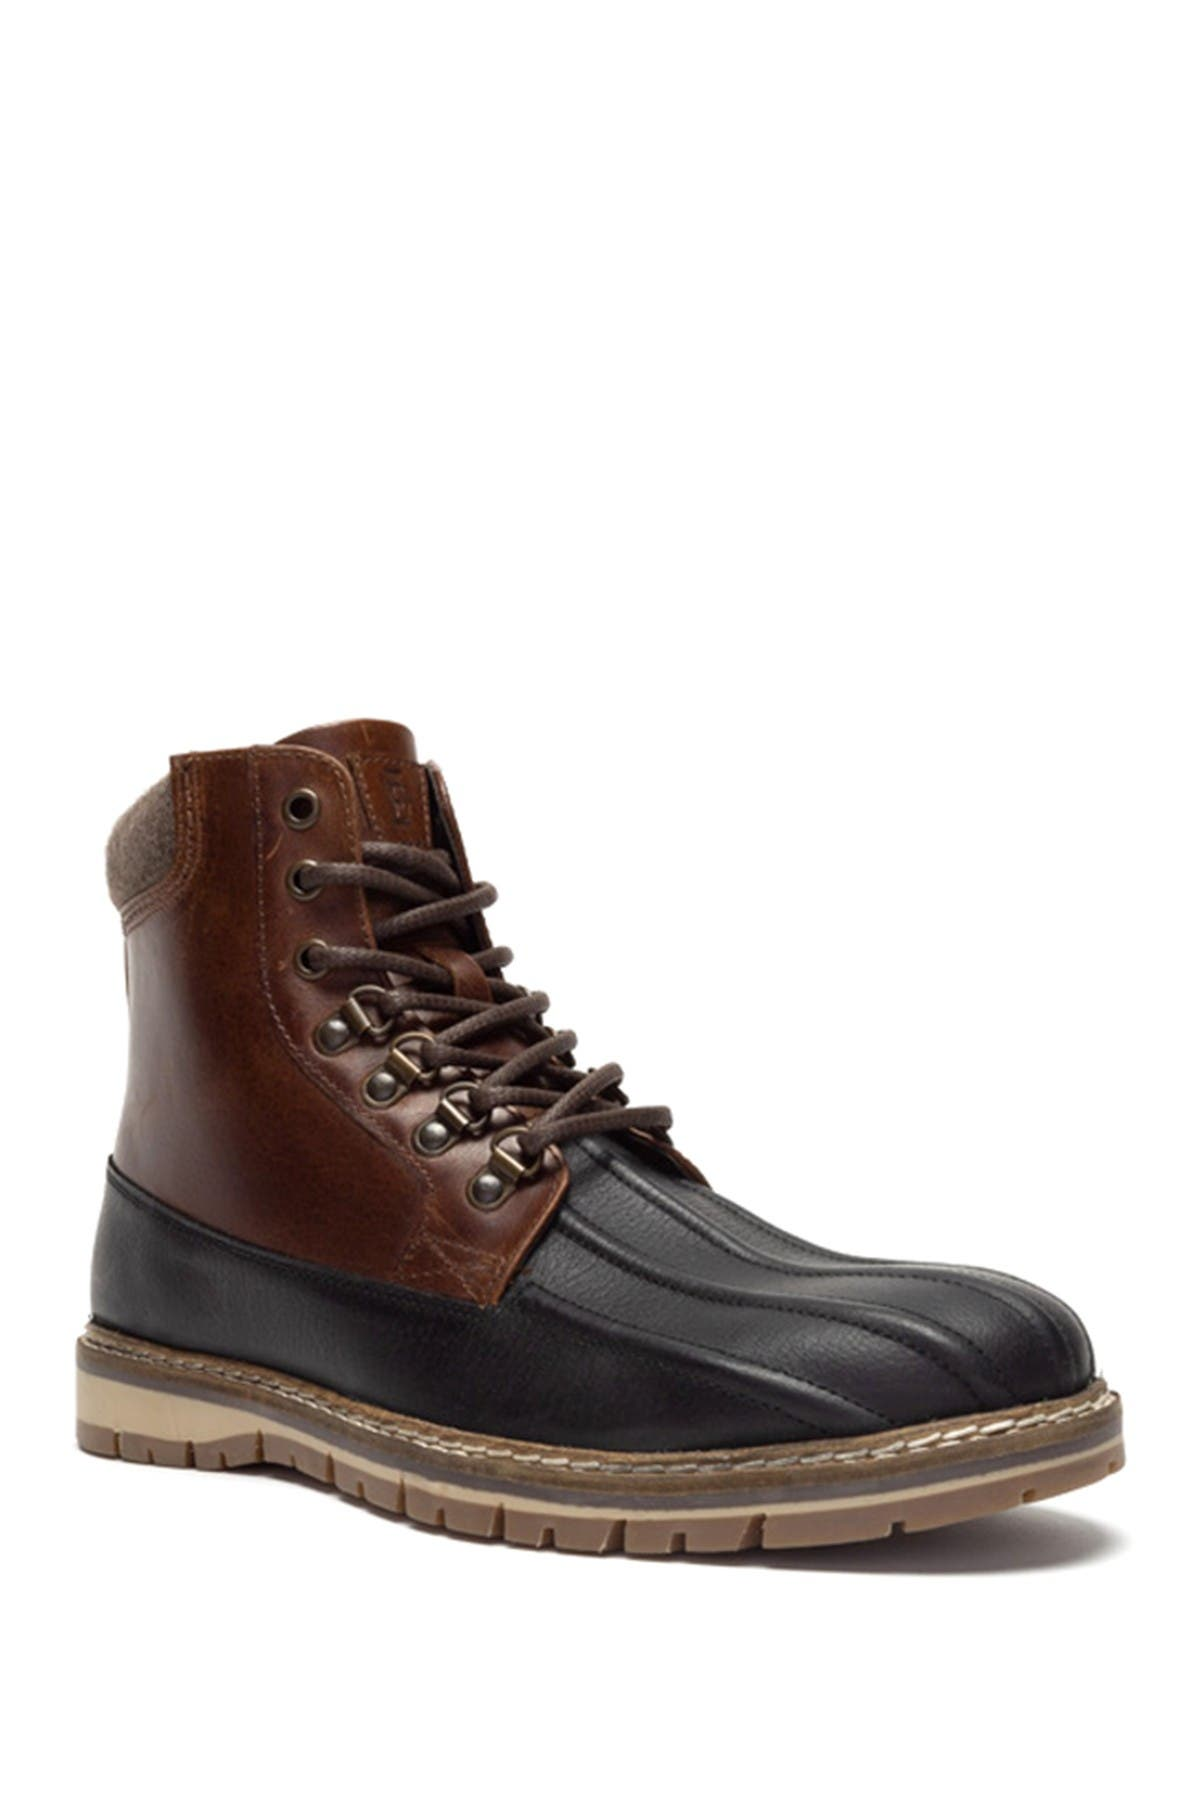 Image of Crevo Kannard Water Resistant Duck Boot